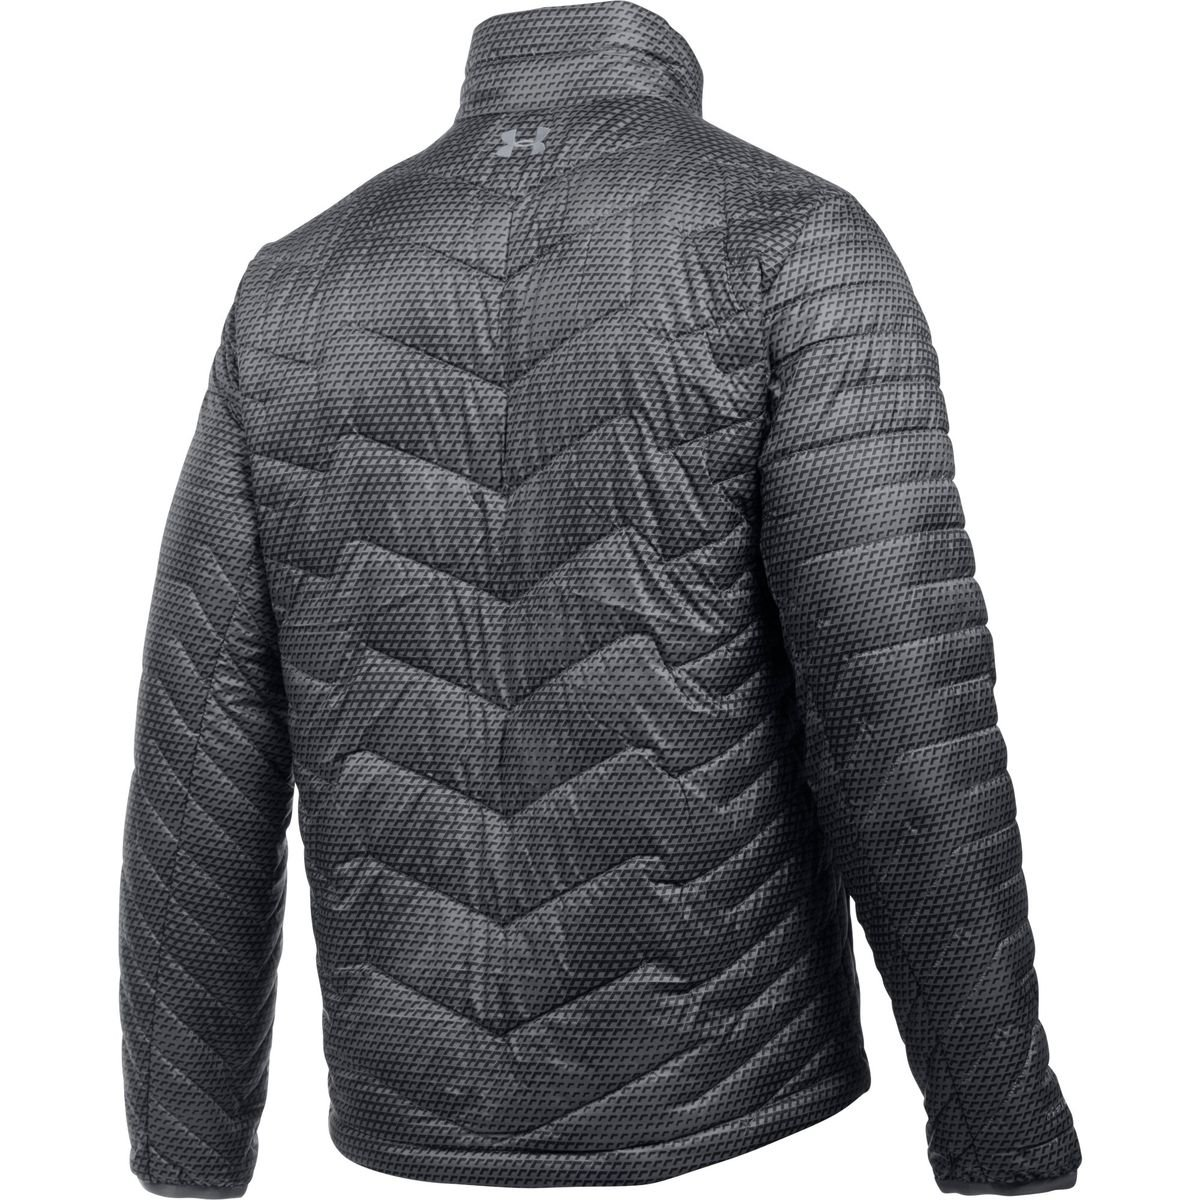 Under Armour Mens ColdGear Reactor Jacket